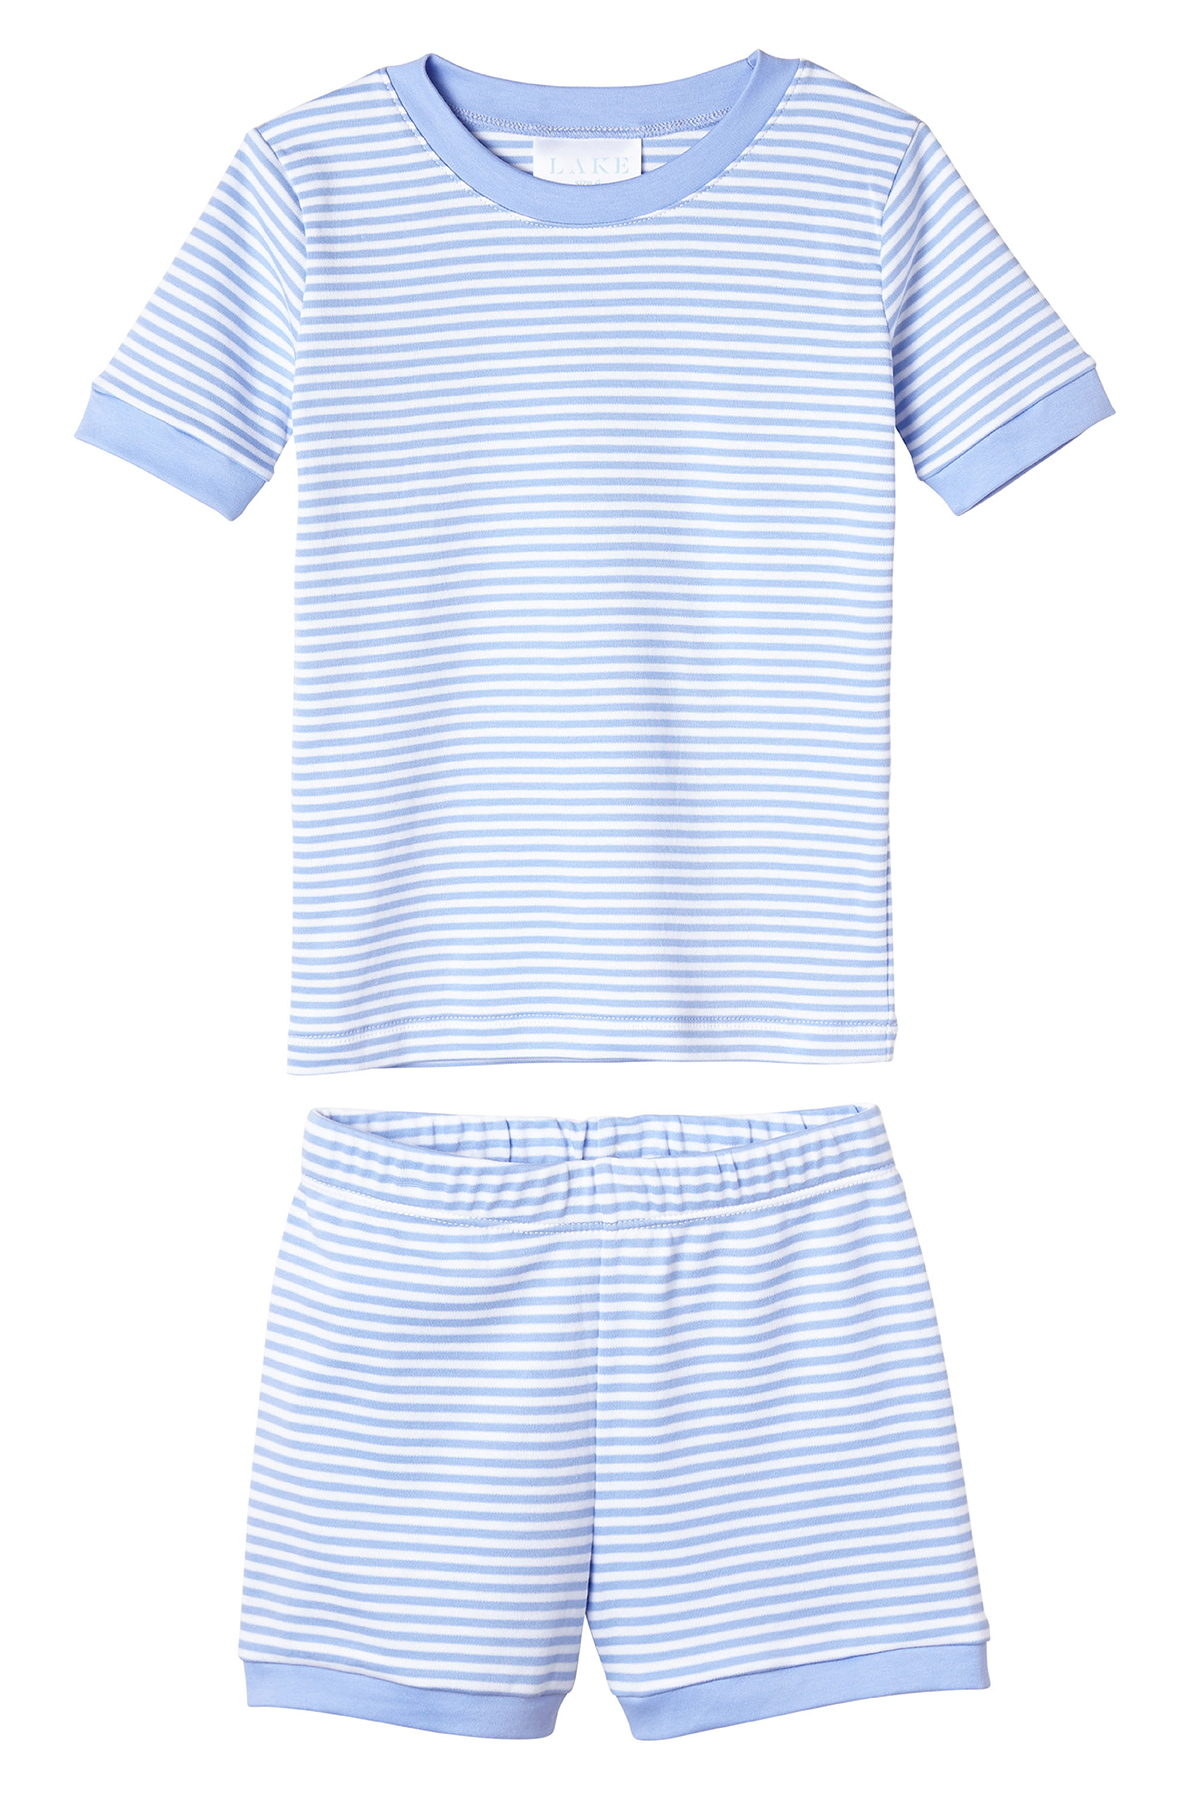 Kids Shorts Set in Hydrangea